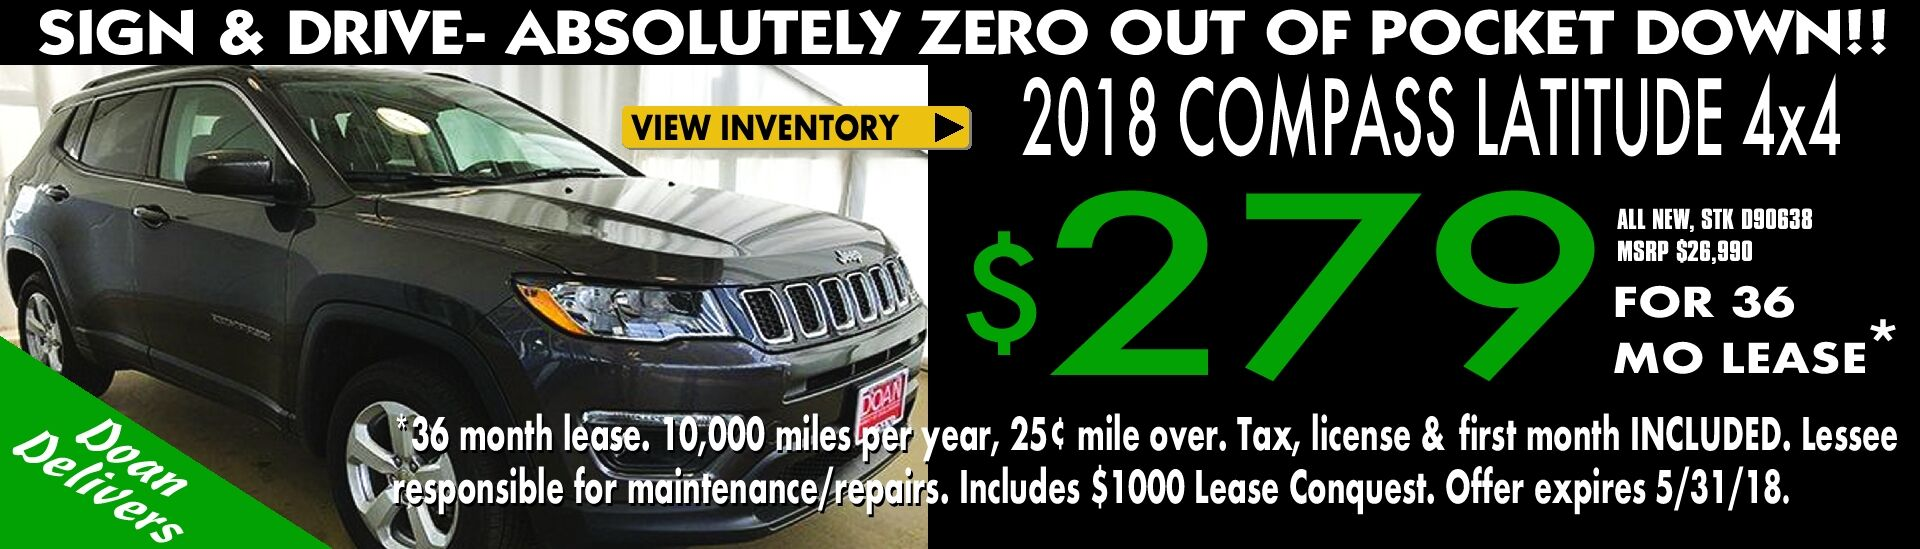 Lease a Jeep Compass!